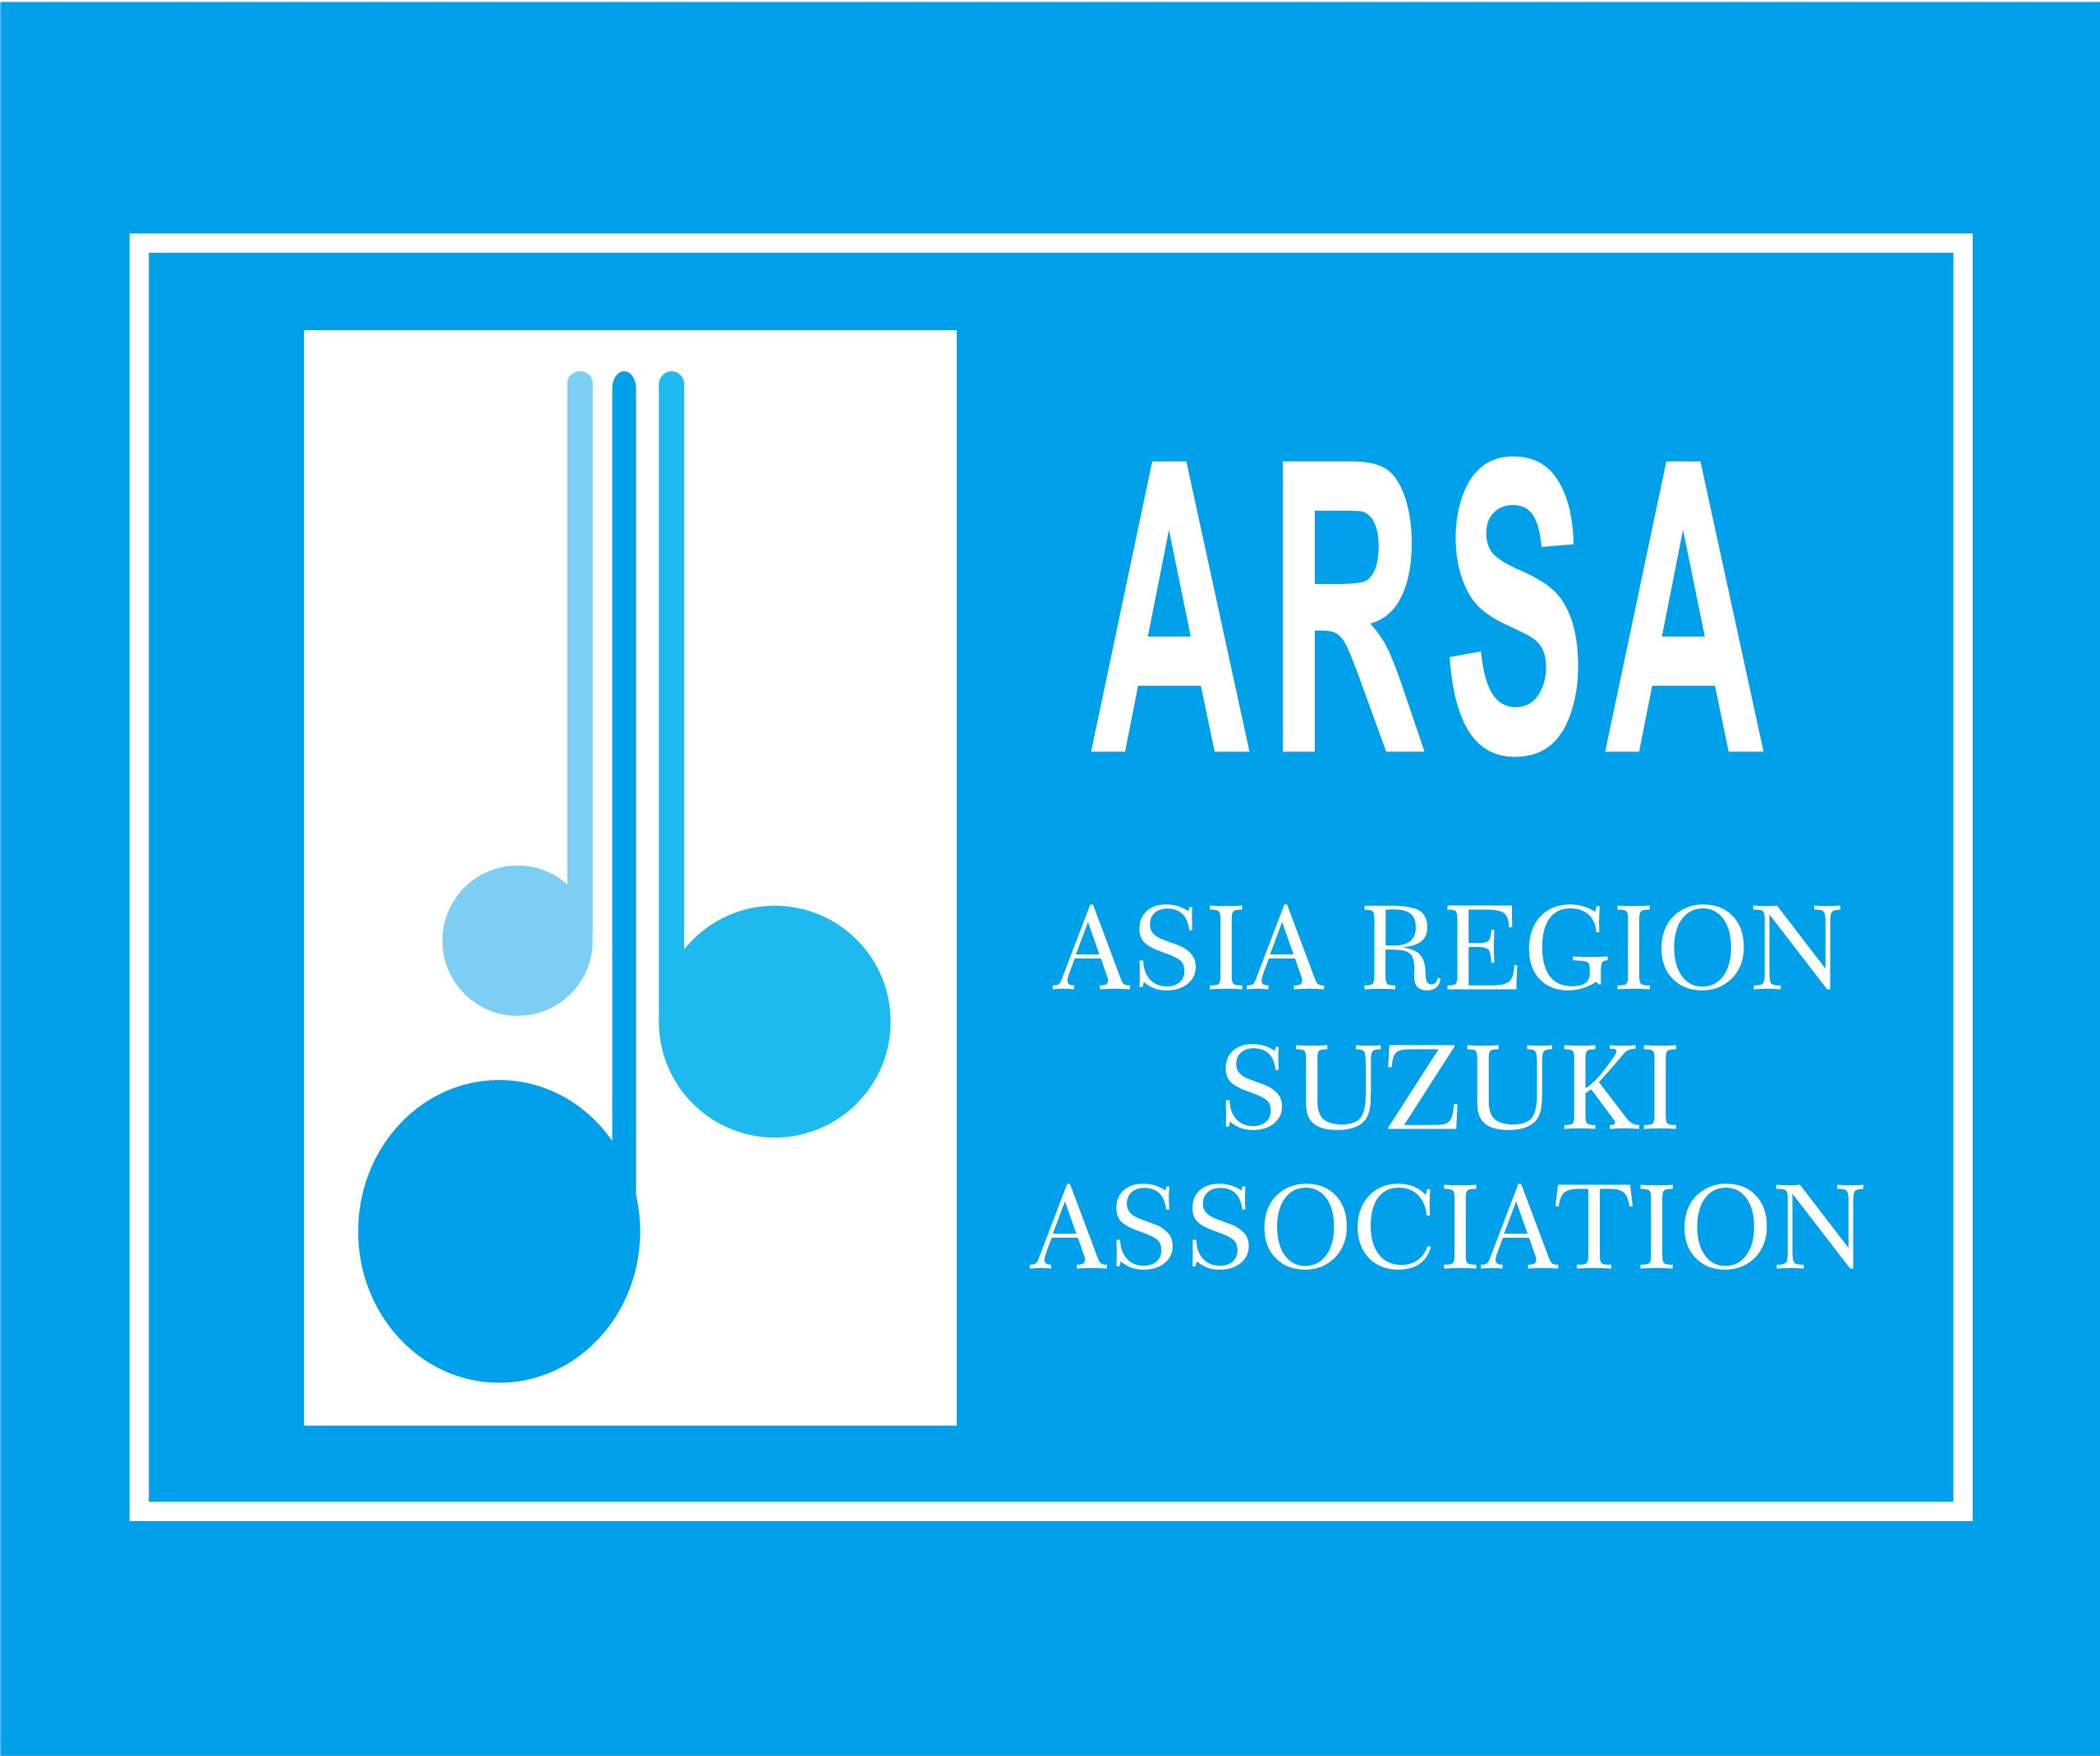 Asia Region Suzuki Association